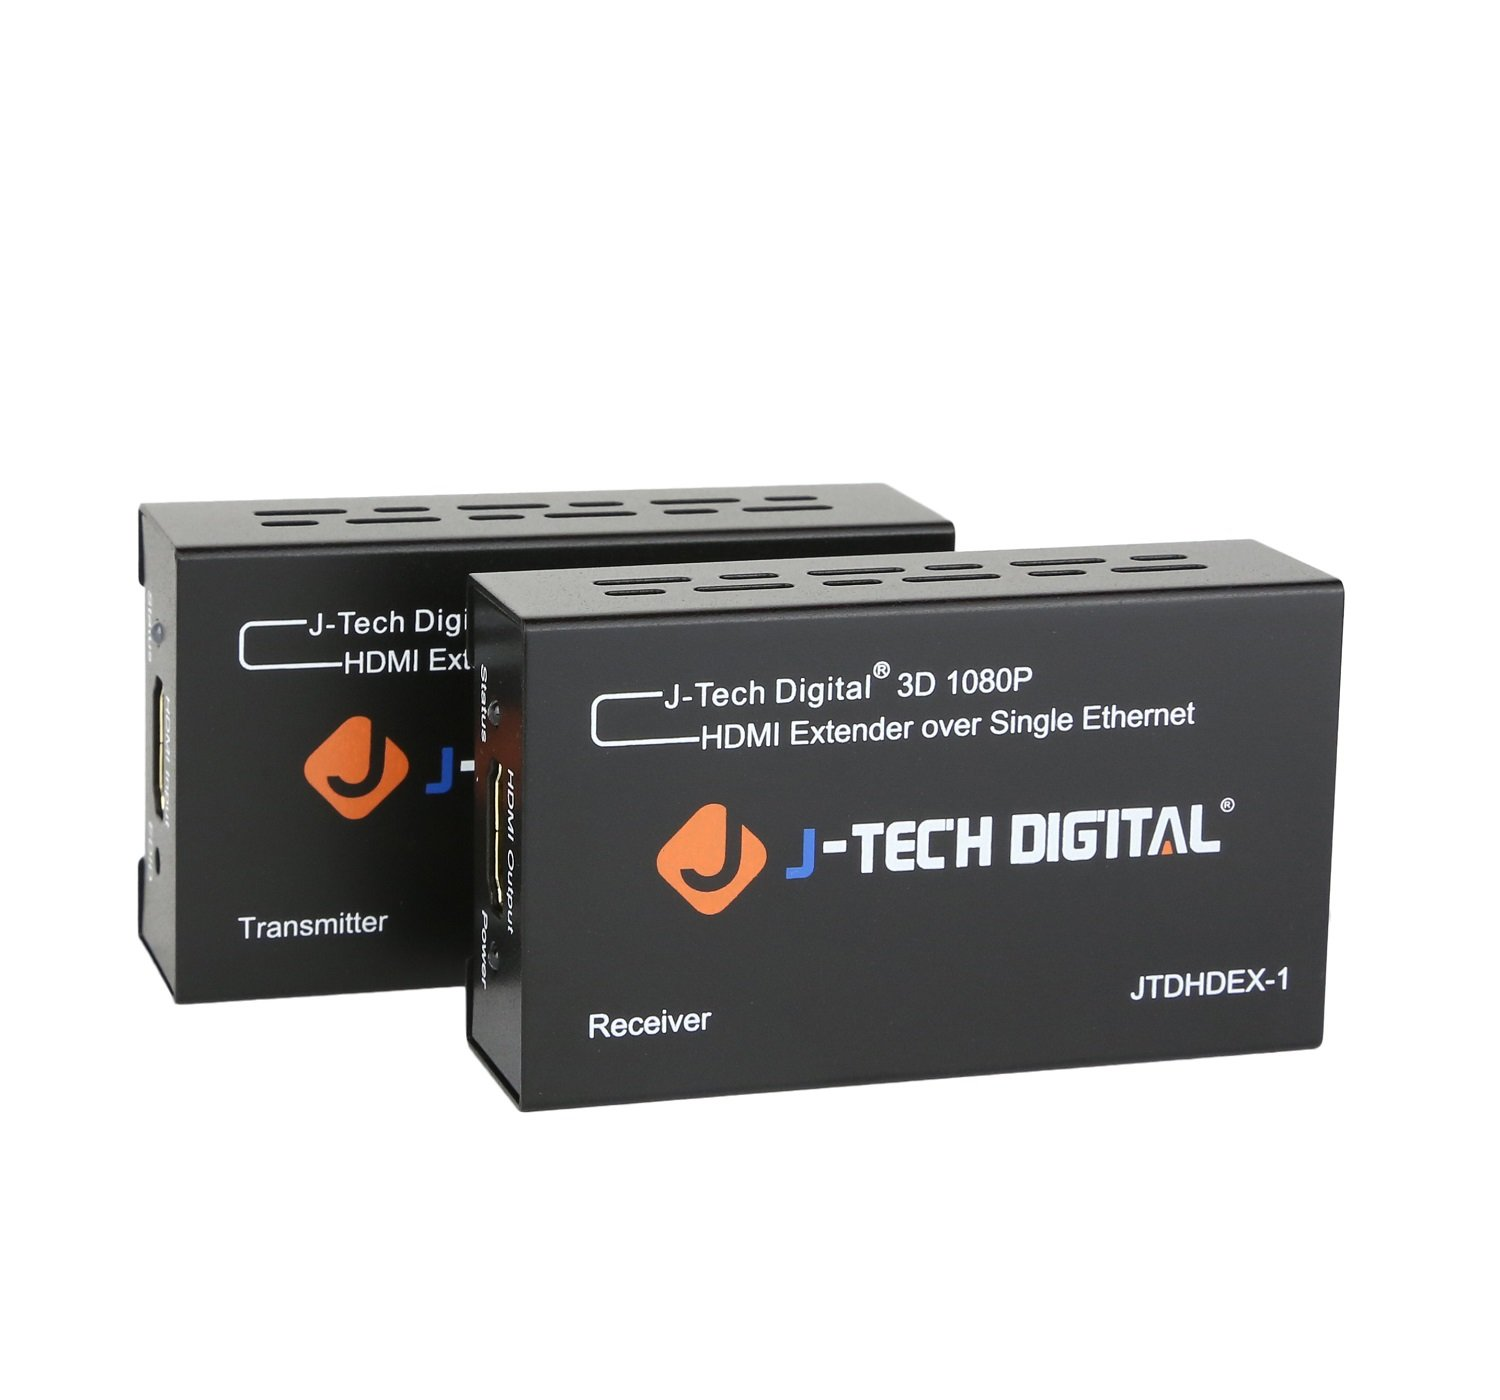 J-Tech Digital HDMI Extender By Single Cat 5E/6/7 Full Hd 1080P With Deep Color, EDID Copy, Dolby Digital/DTS